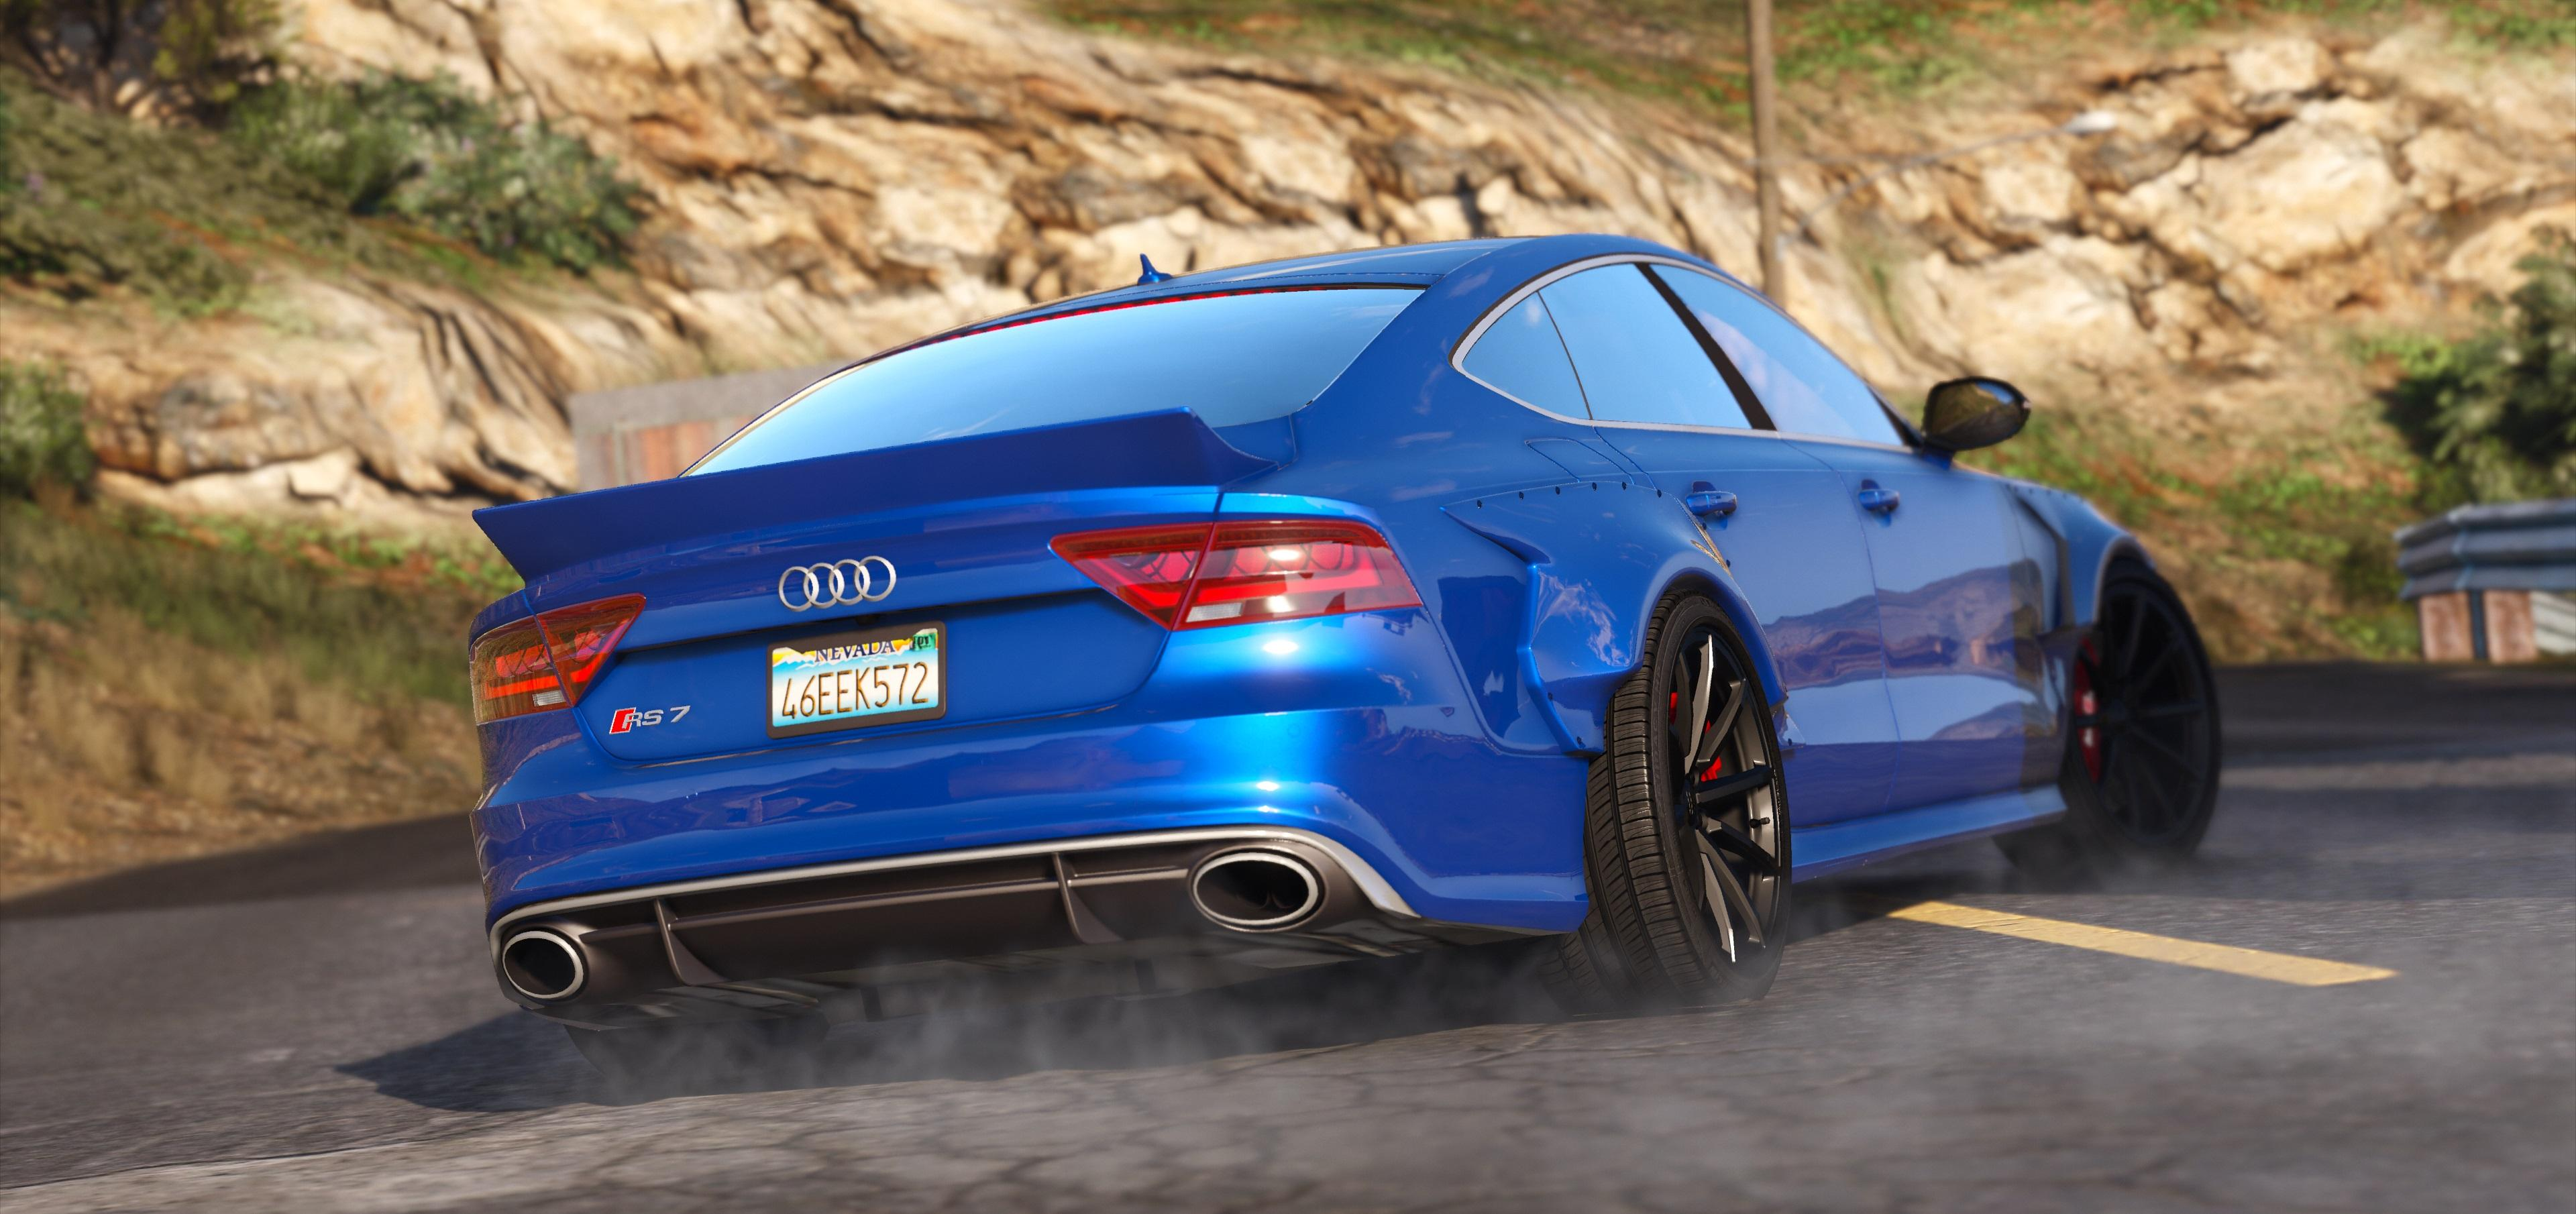 2013 Audi RS7 - GTA5-Mods.com